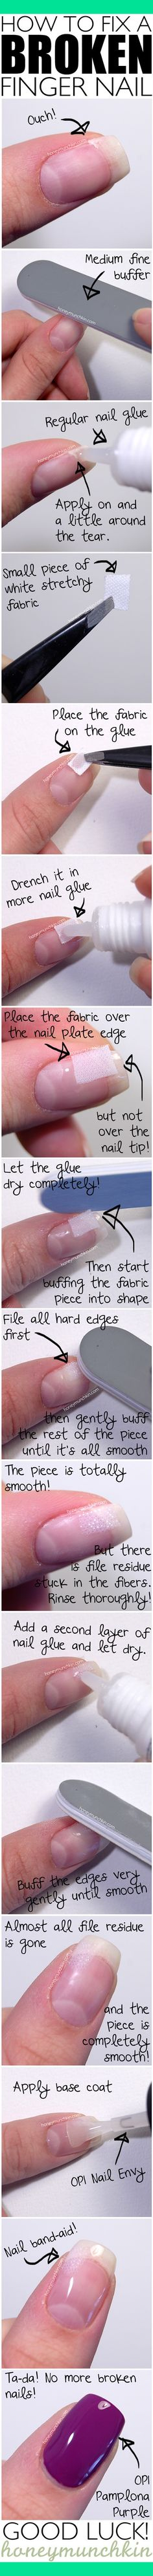 Tutorial: How to fix a broken finger nail - The Beauty Thesis